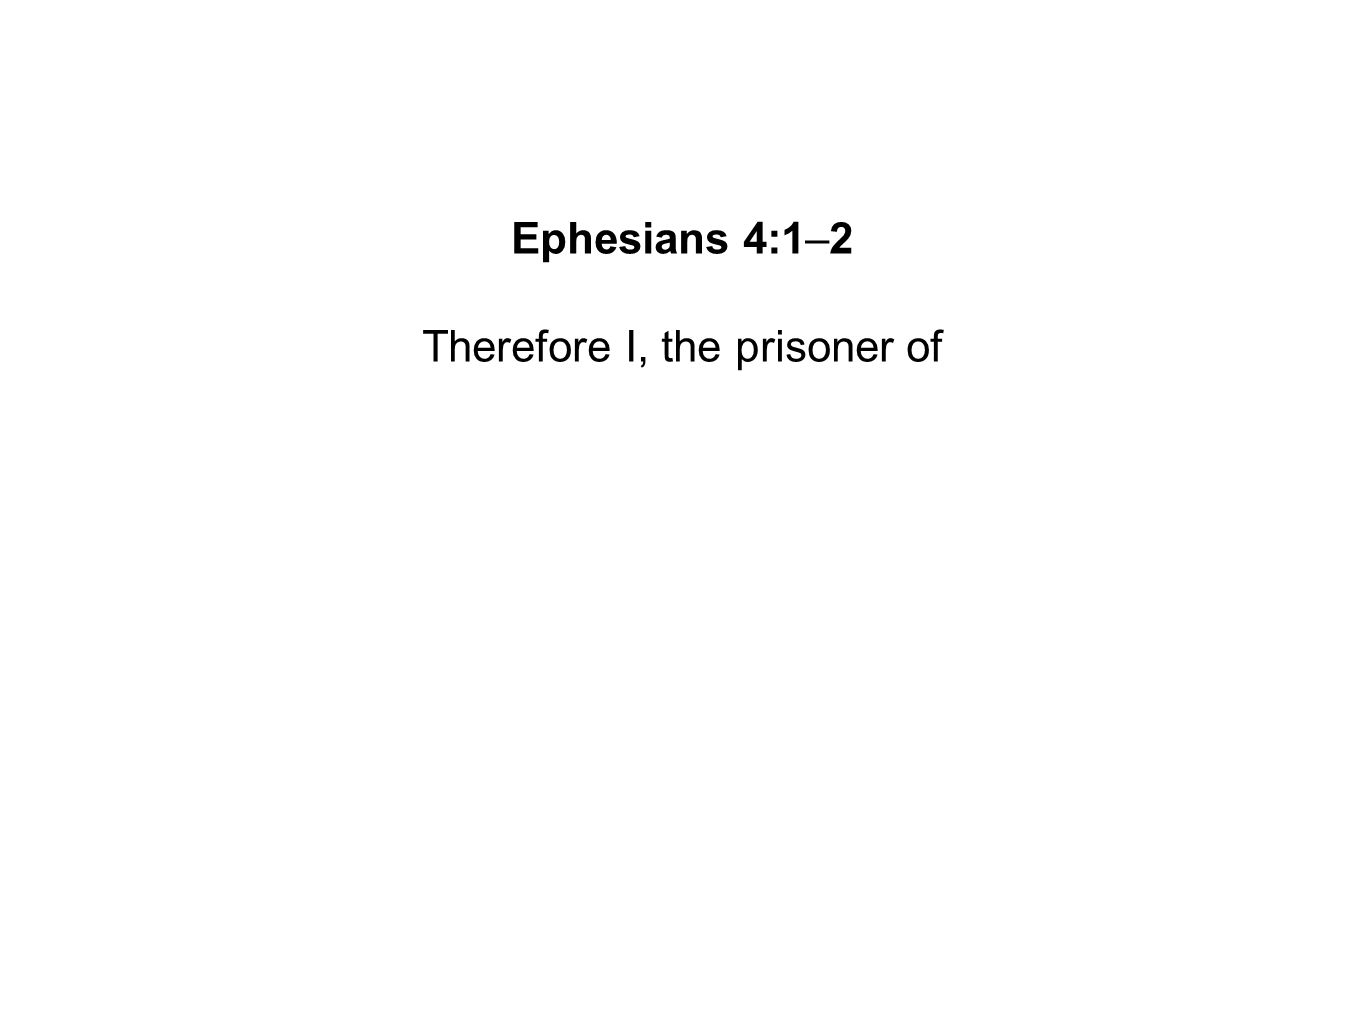 Therefore I, the prisoner of